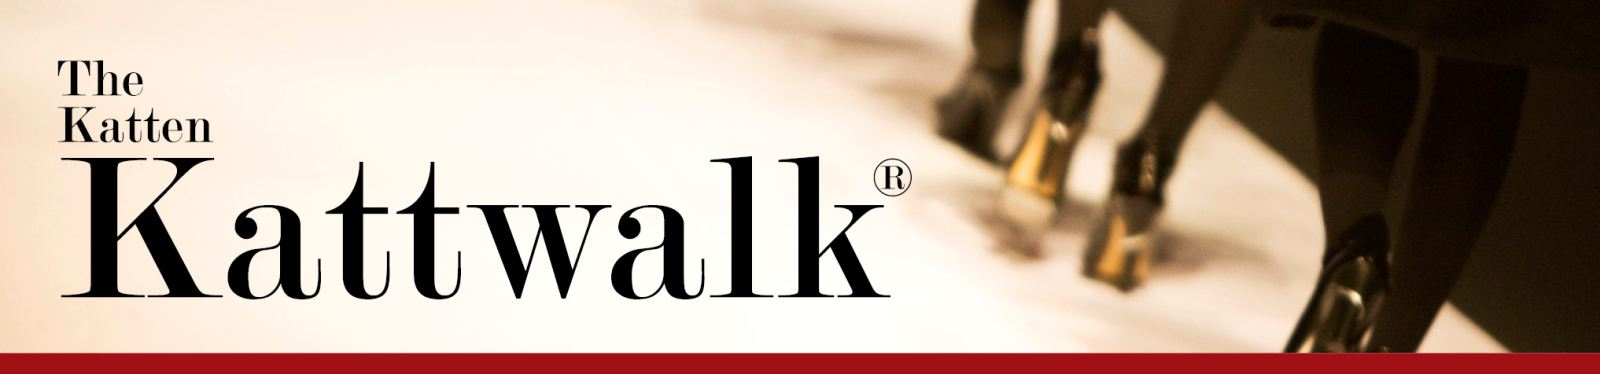 The Katten Kattwalk ® banner image